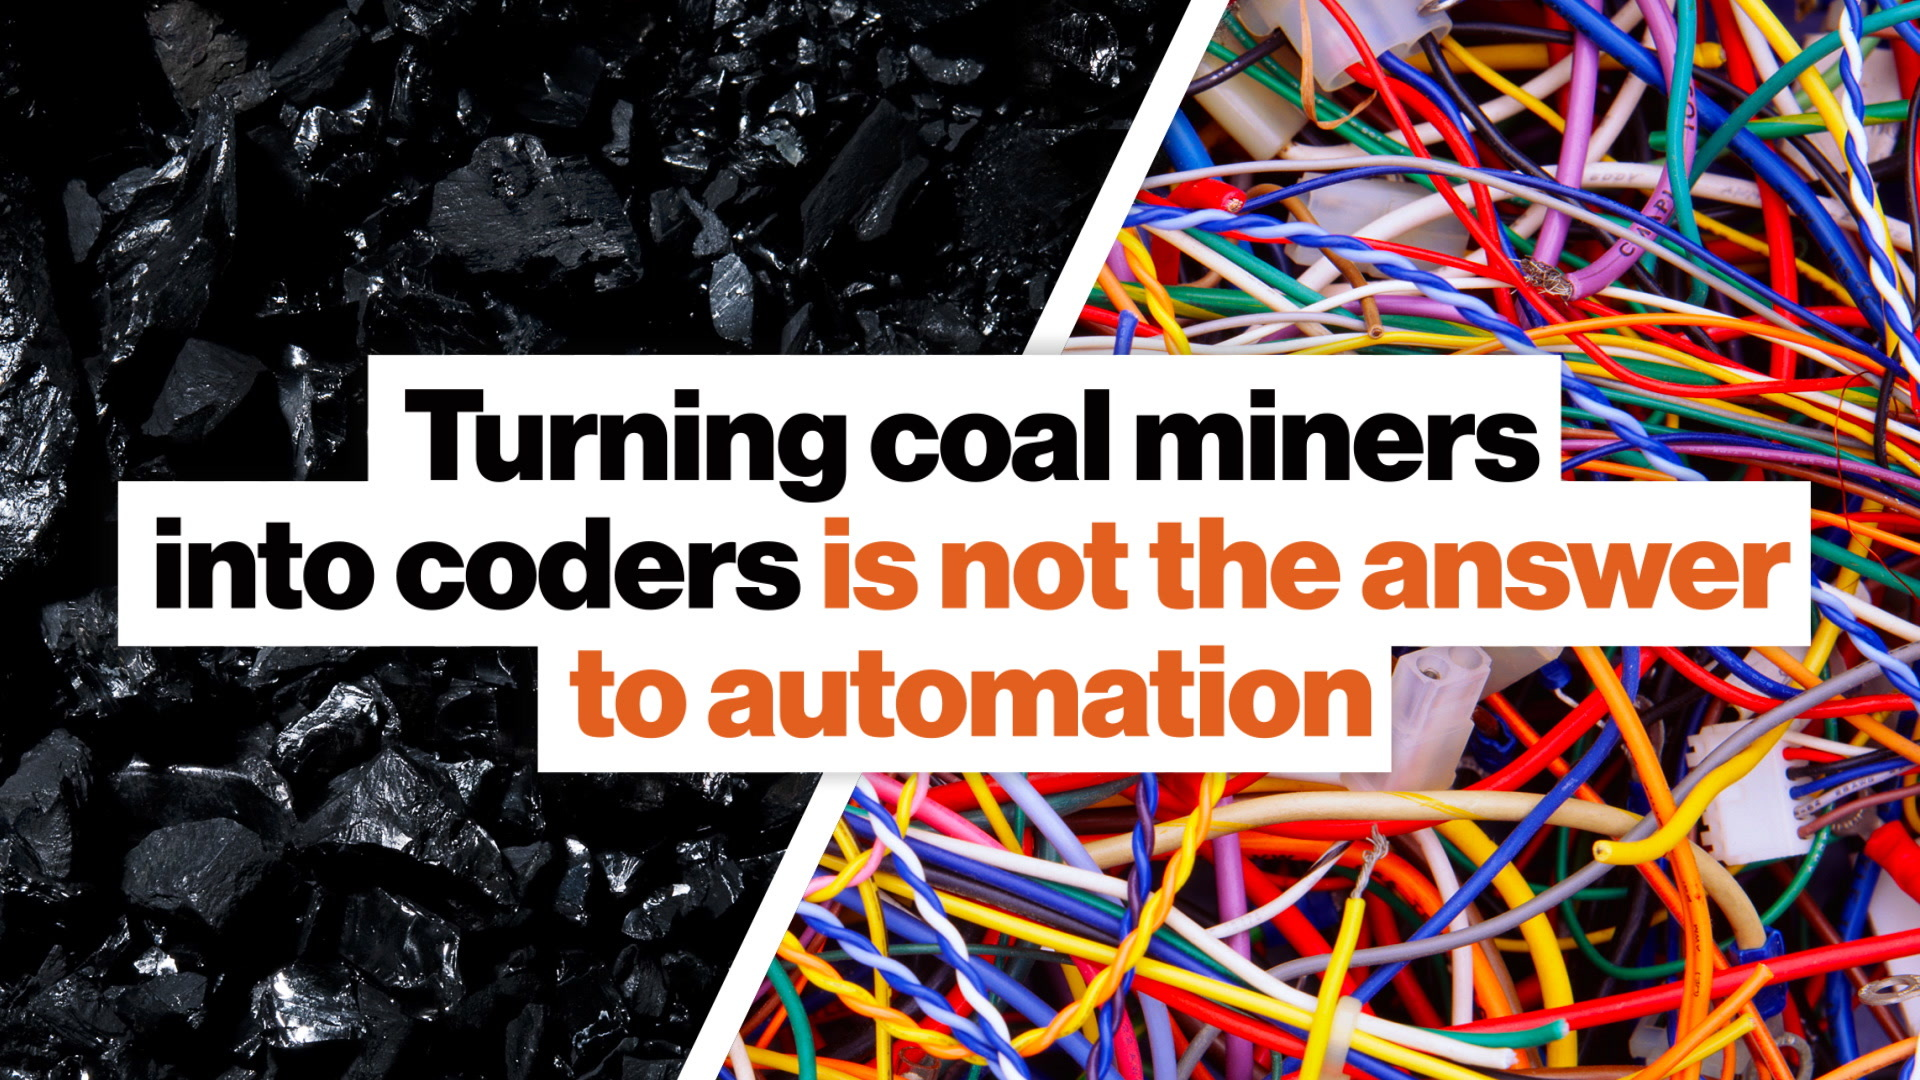 Turning coal miners into coders is not the answer to automation